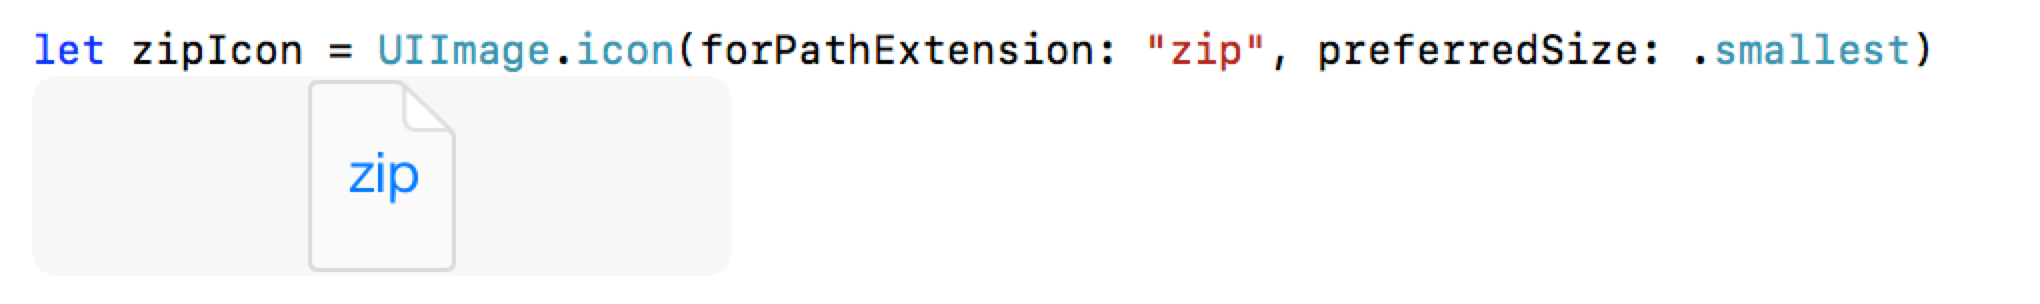 Screenshot of code calling the iconForPathExtension example above.